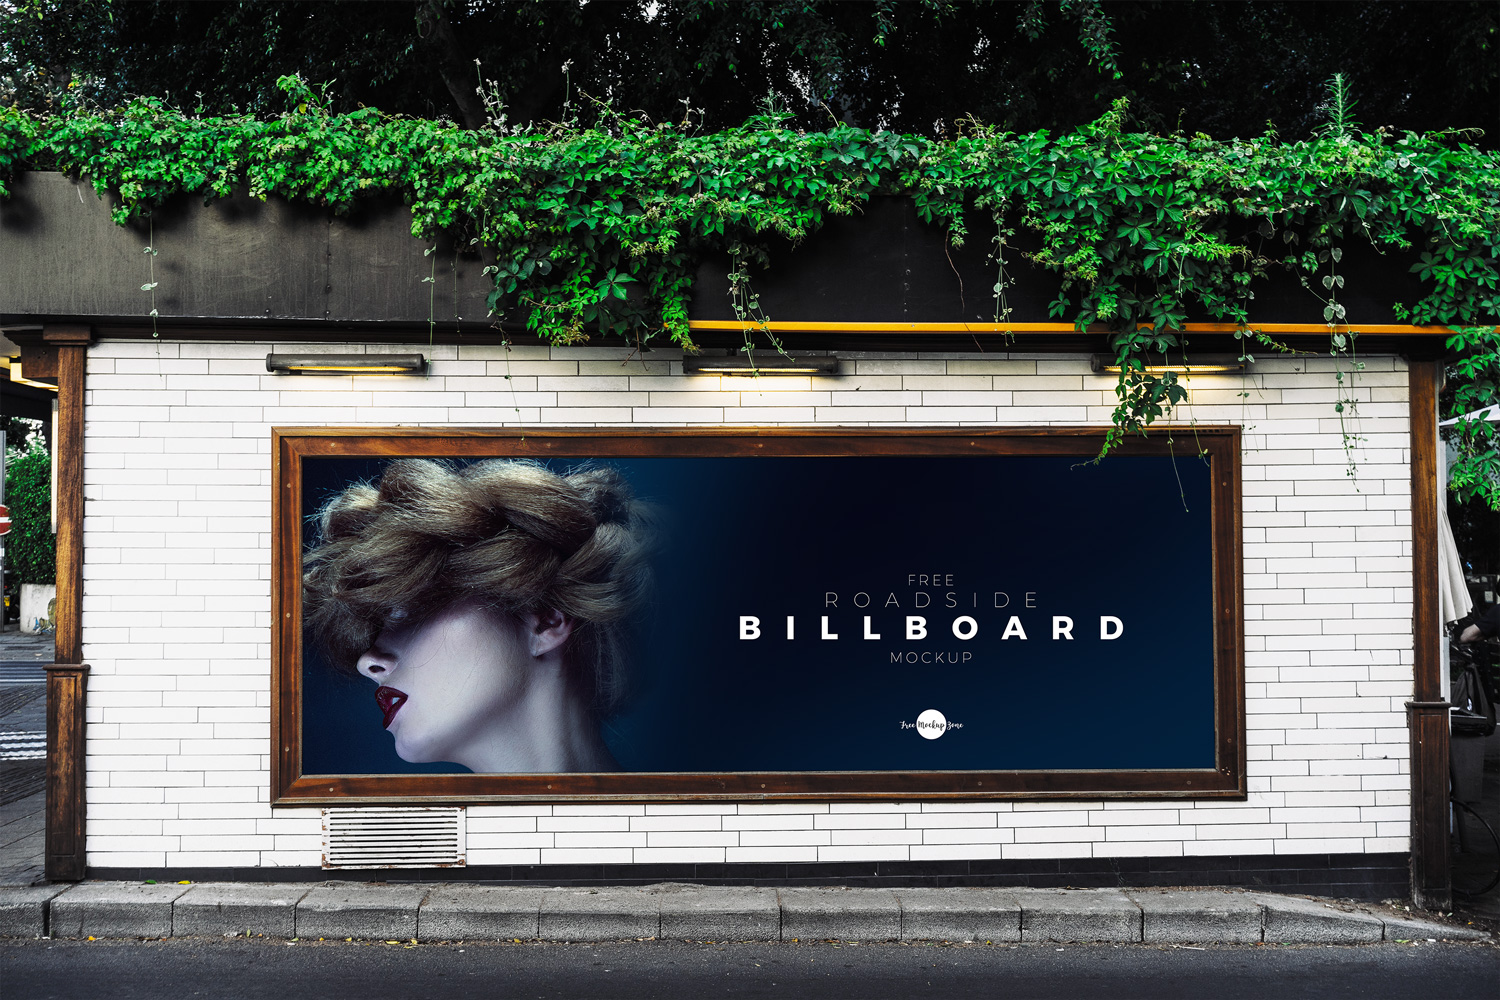 Free-Roadside-Advertisement-Billboard-Mockup-PSD-2018